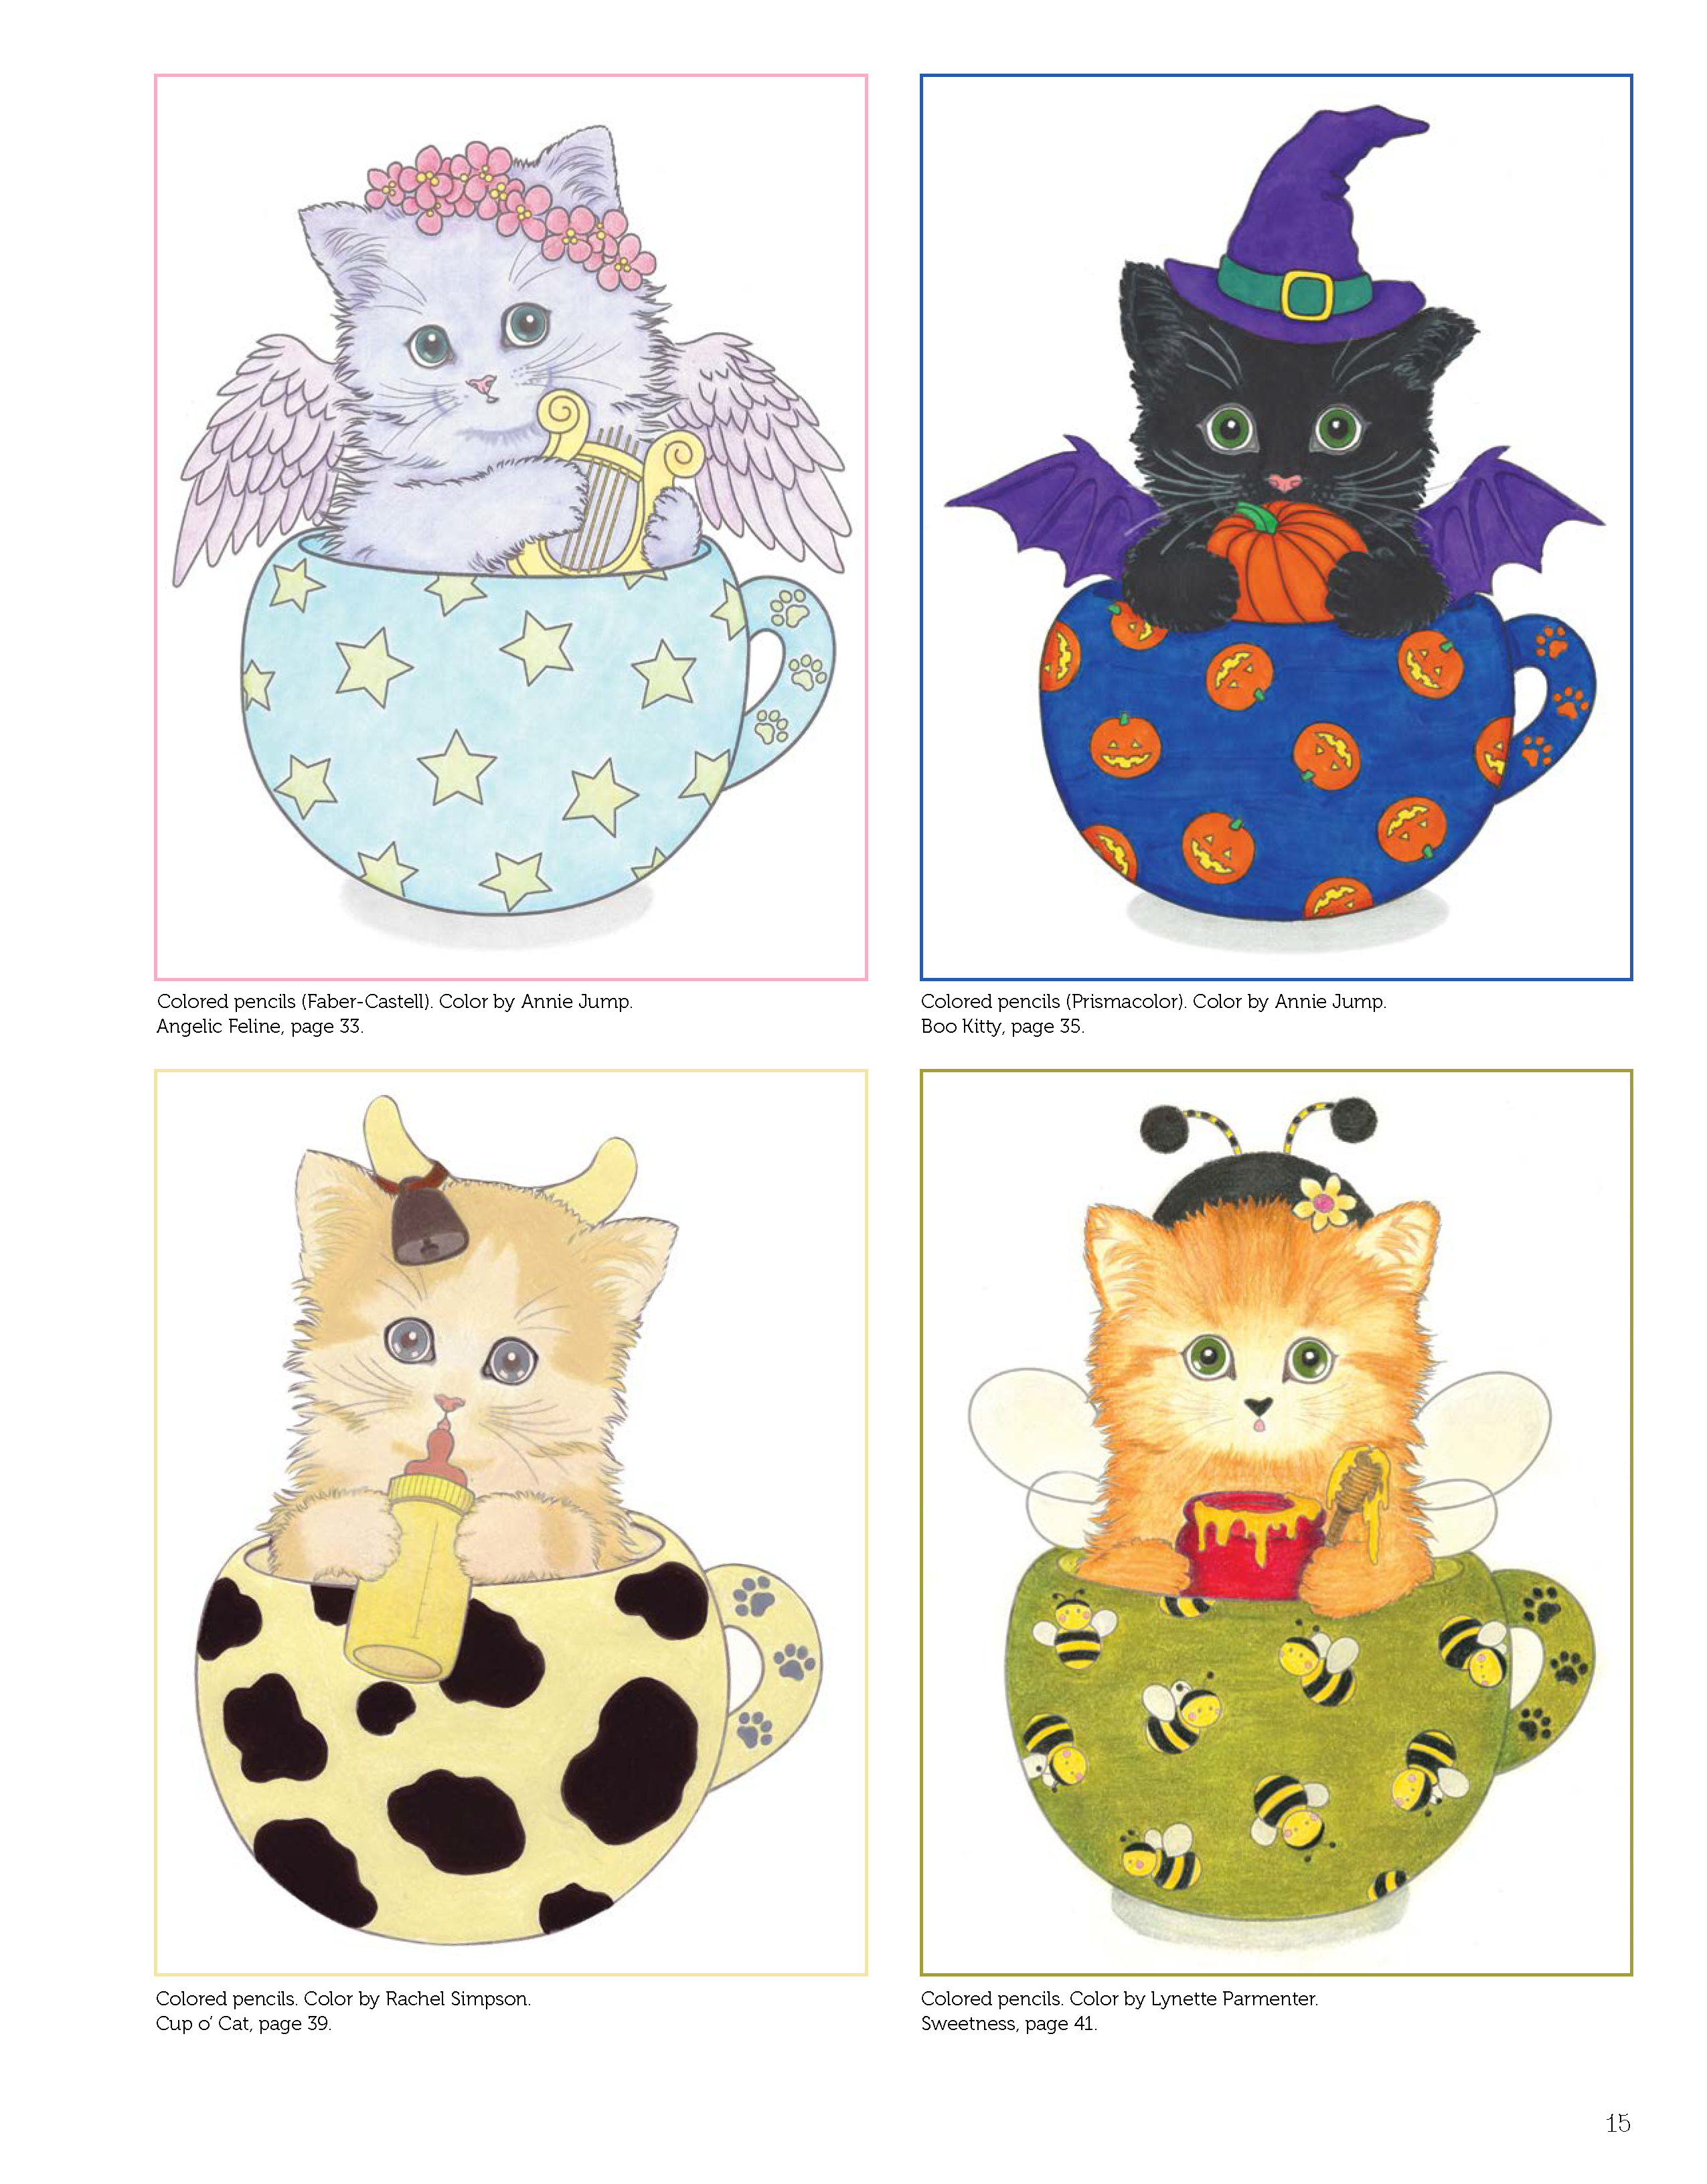 Teacup Kittens Coloring Book Design Originals 32 Adorable Expressive Eyed Cat Designs From Illustrator Ka Kitten Coloring Book Kittens Coloring Teacup Kitten